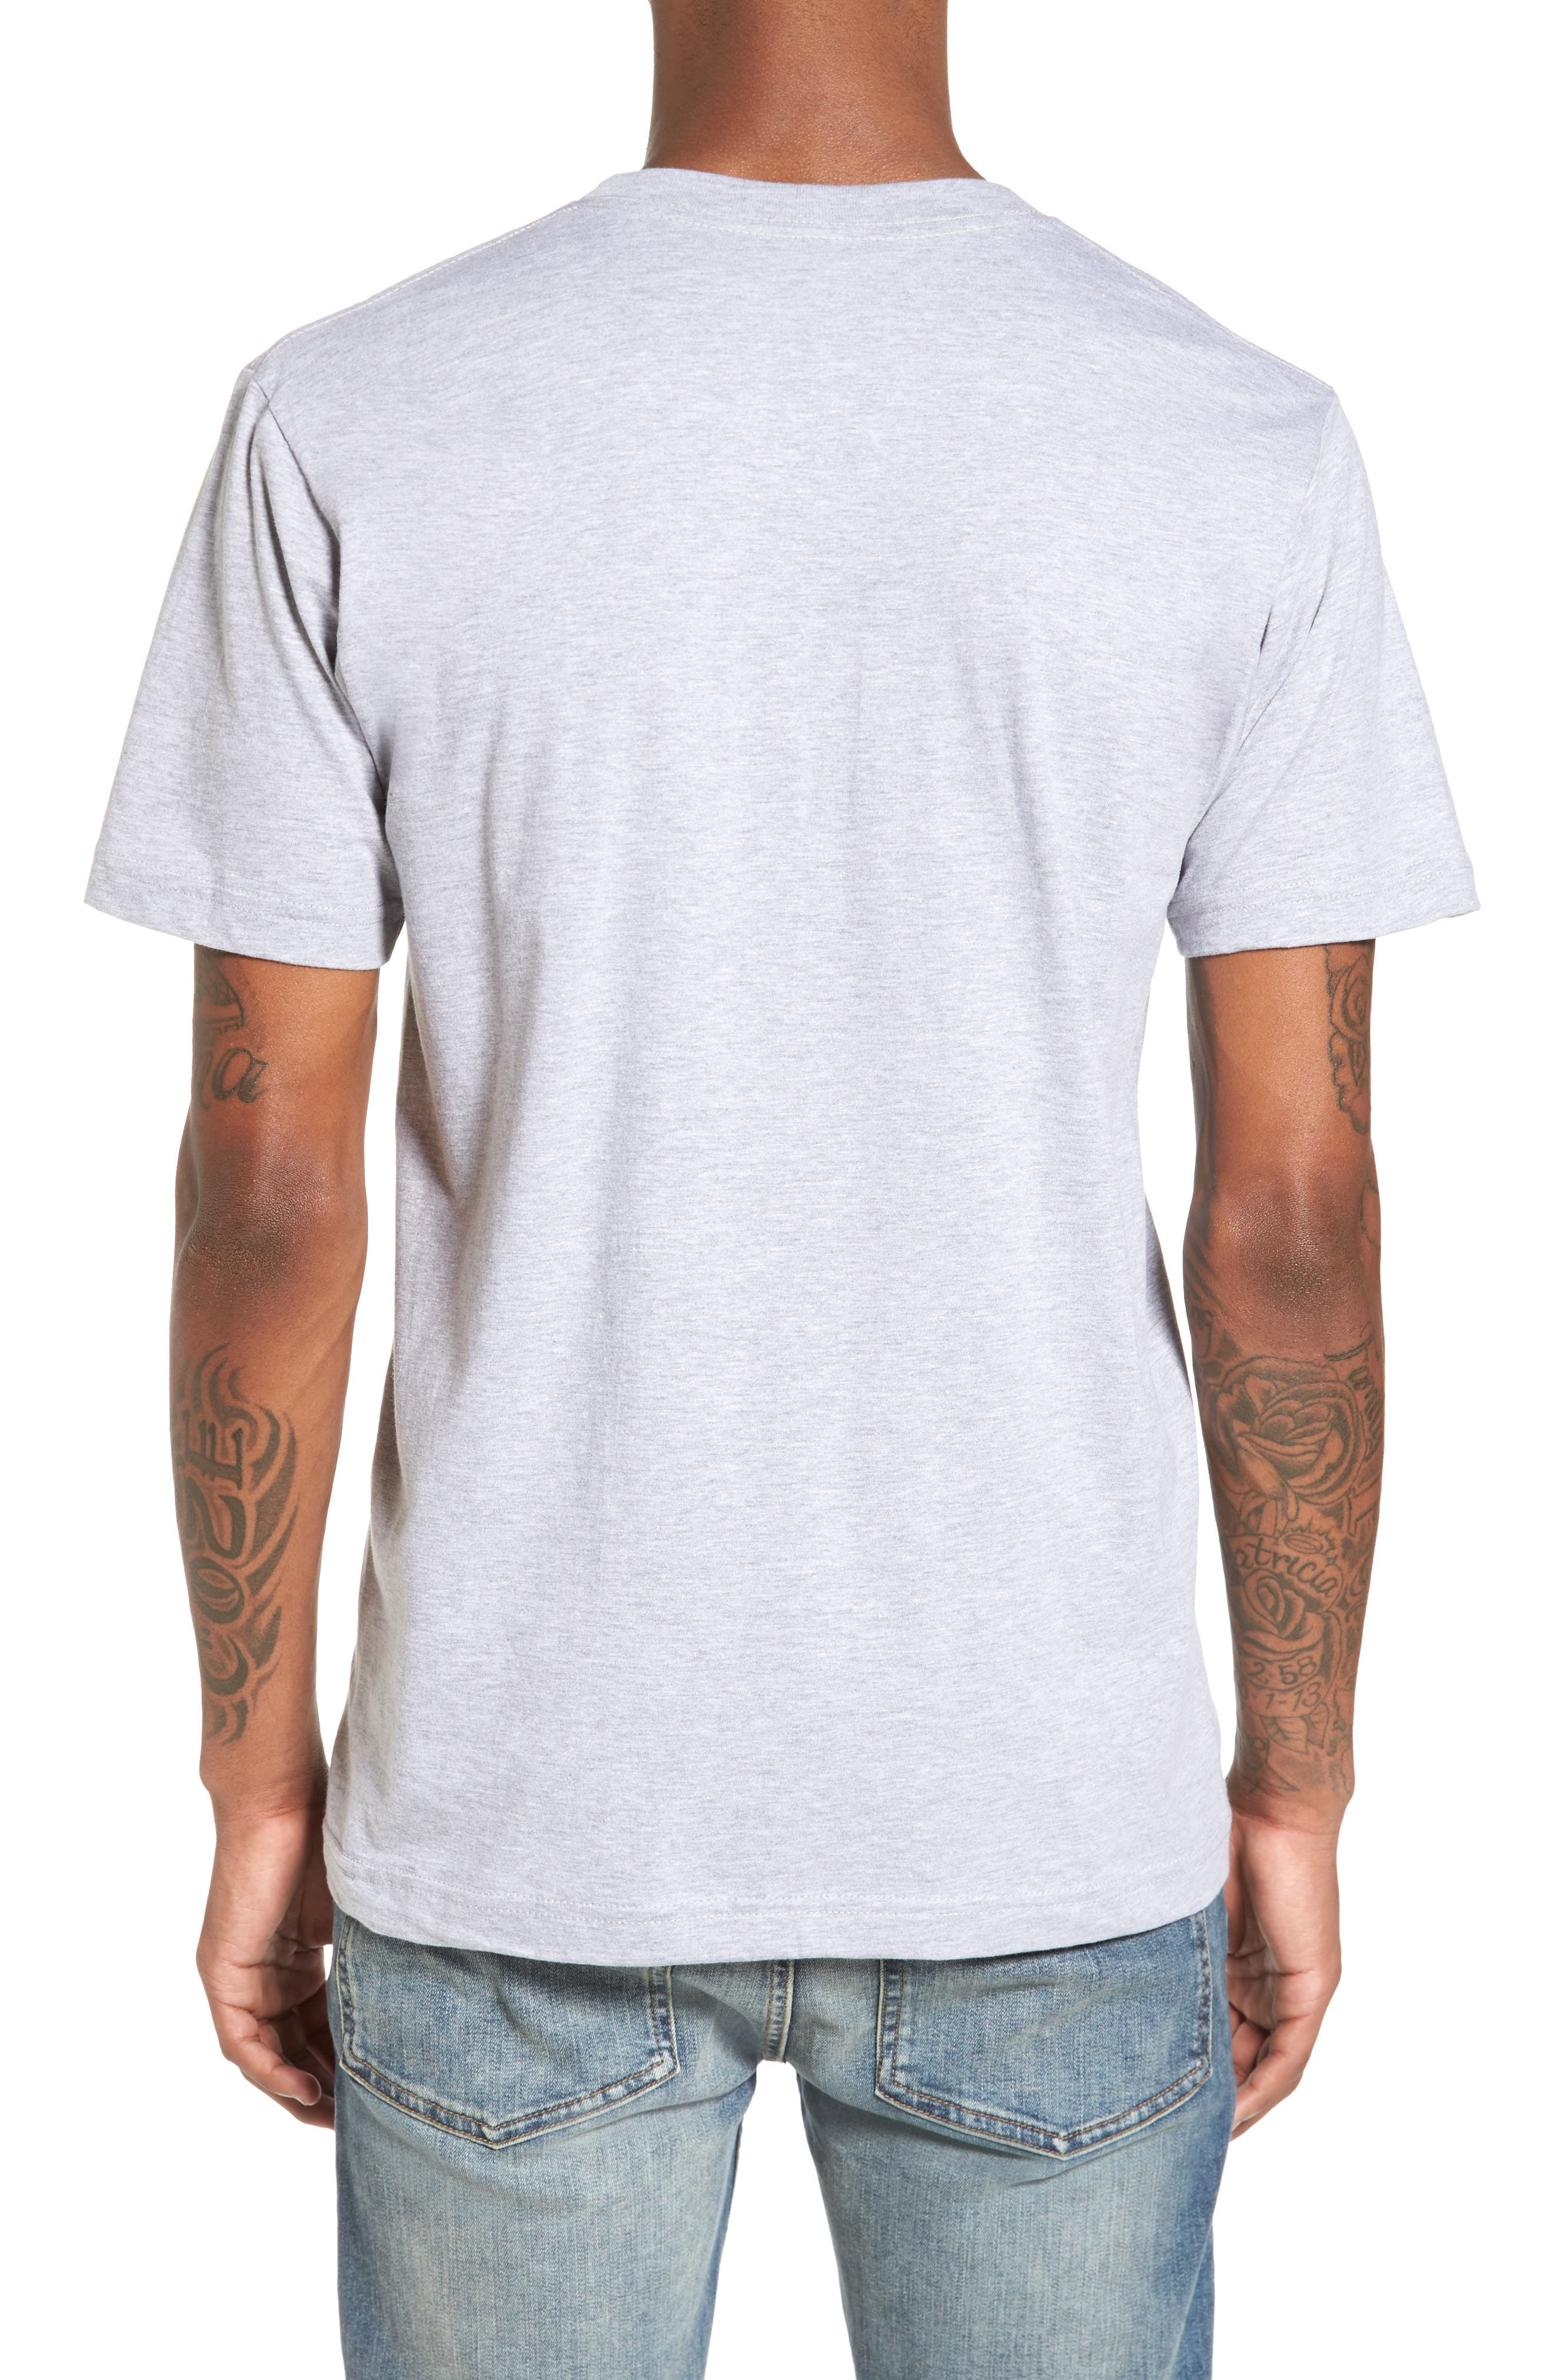 Windmill Graphic T-Shirt,                             Alternate thumbnail 2, color,                             Heather Grey